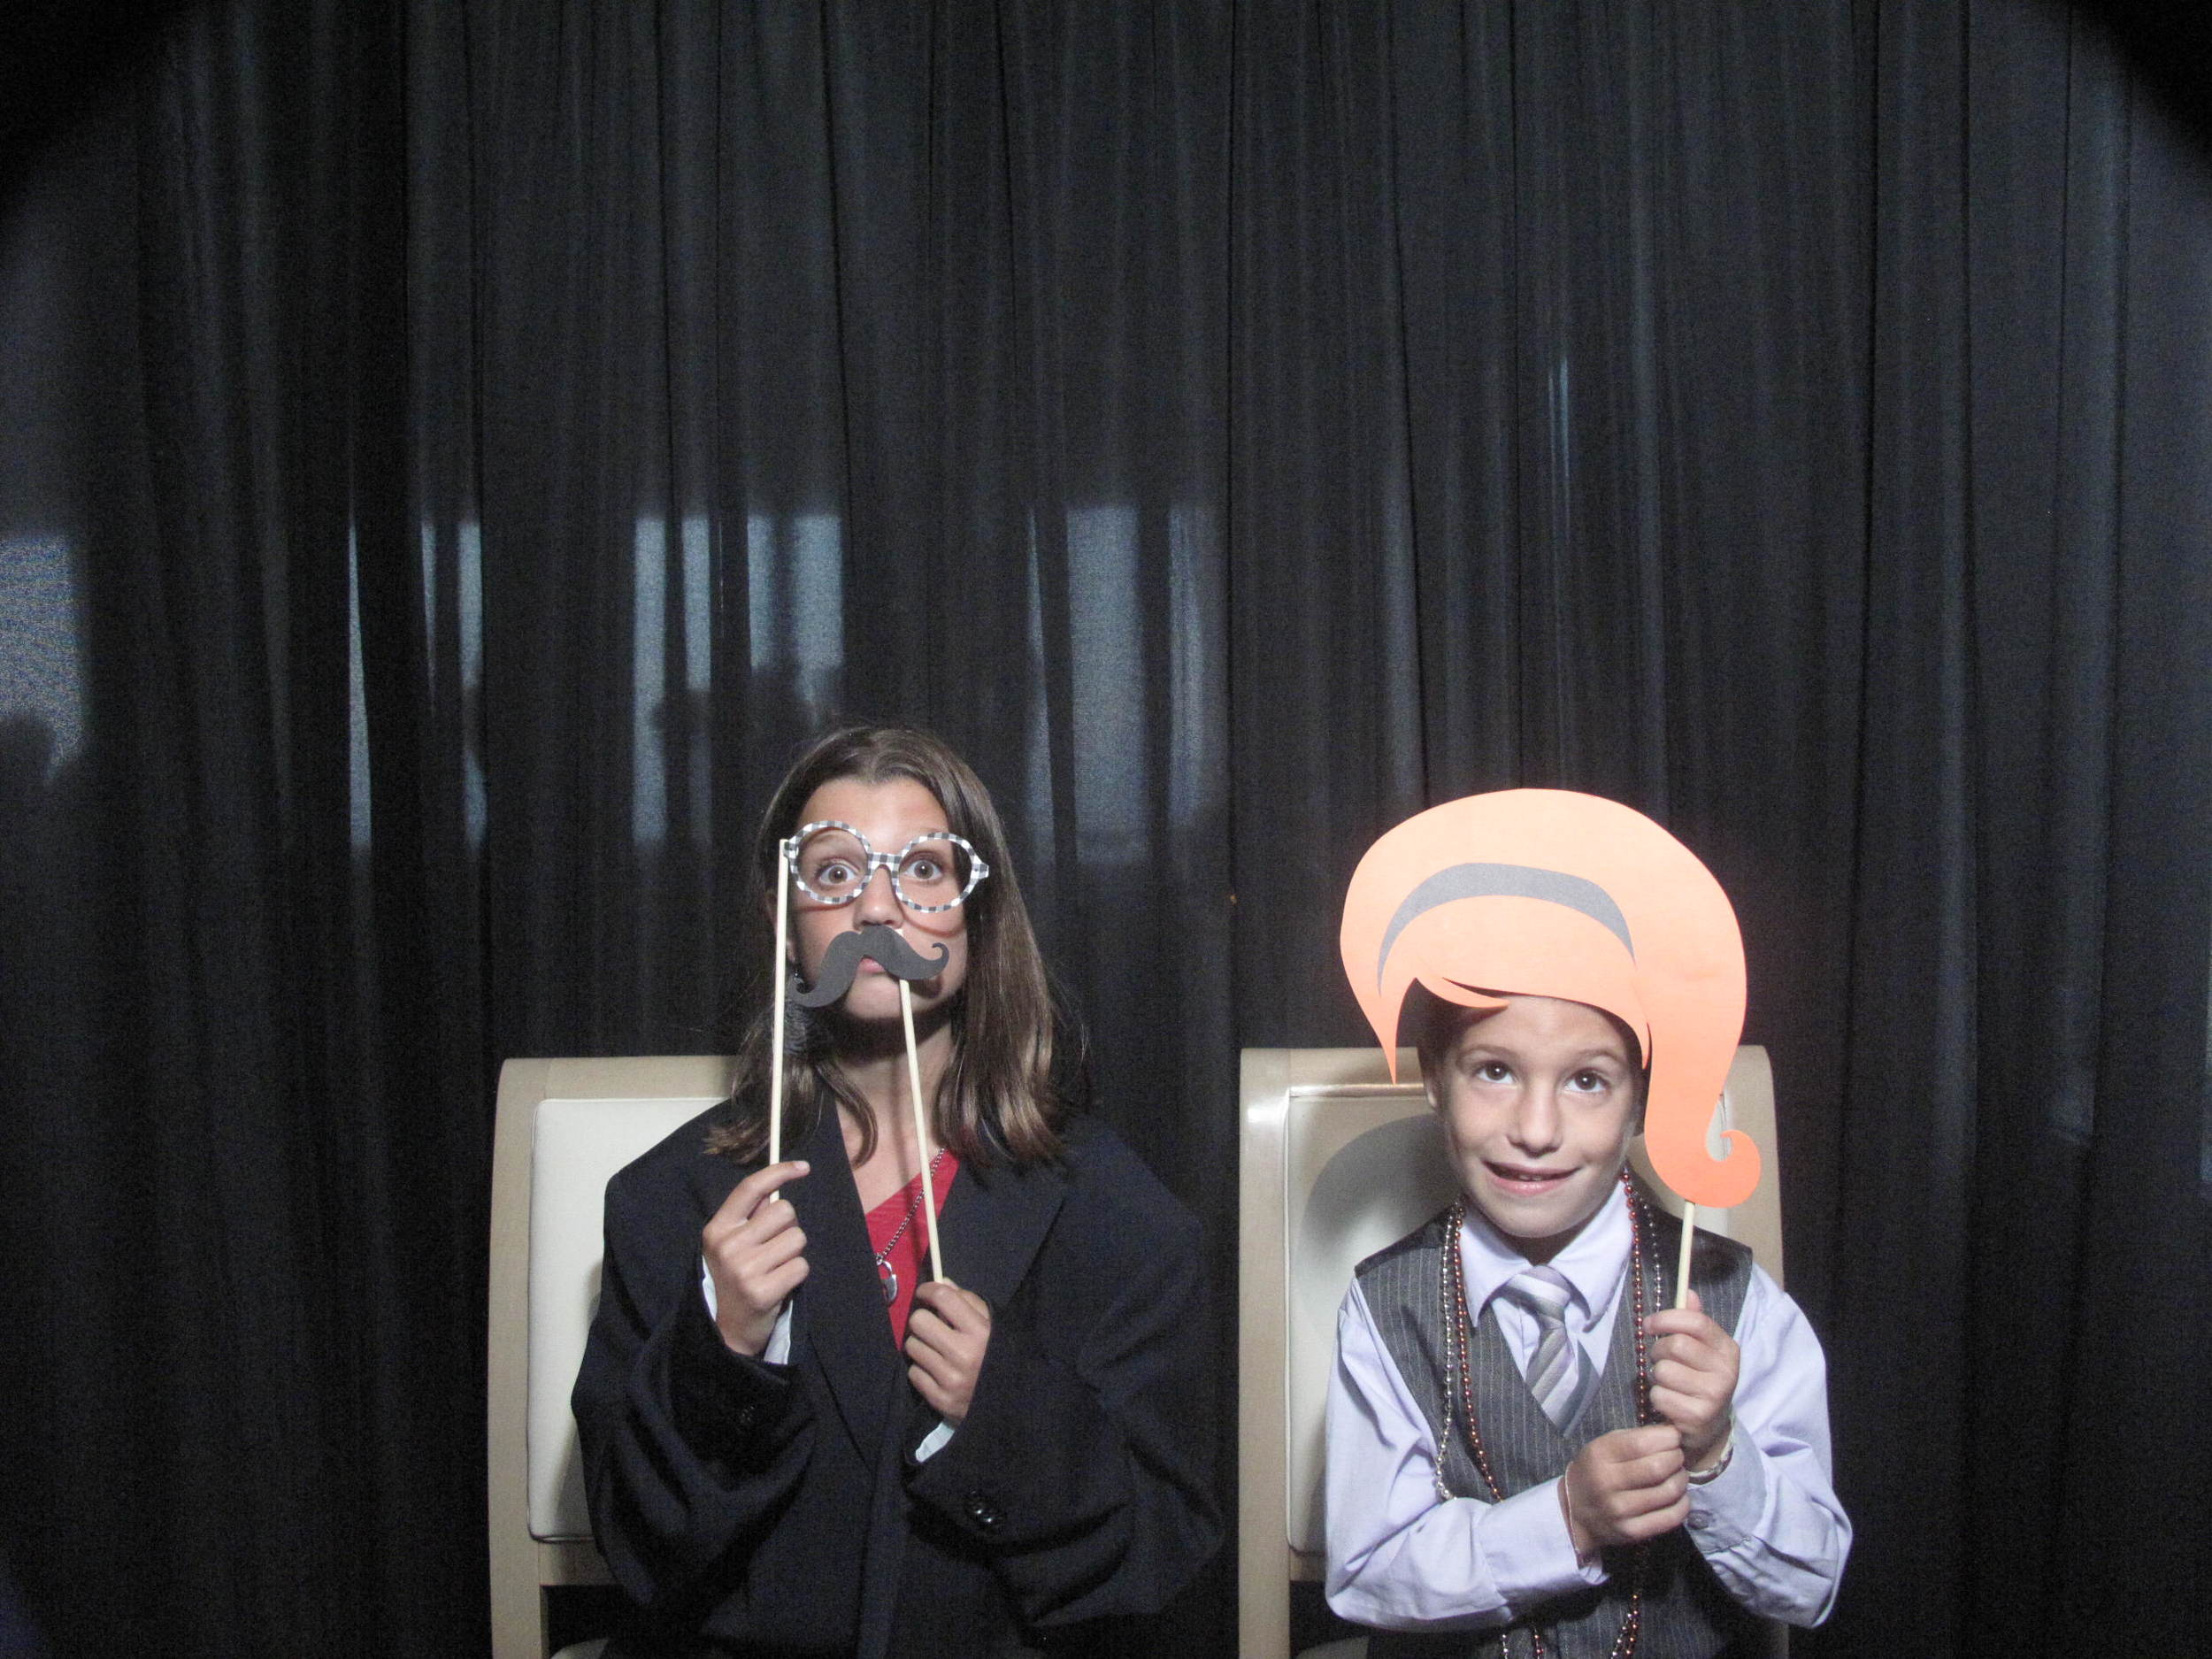 Snapshot Photobooths at McLoone's Pier House in Long Branch, New Jersey